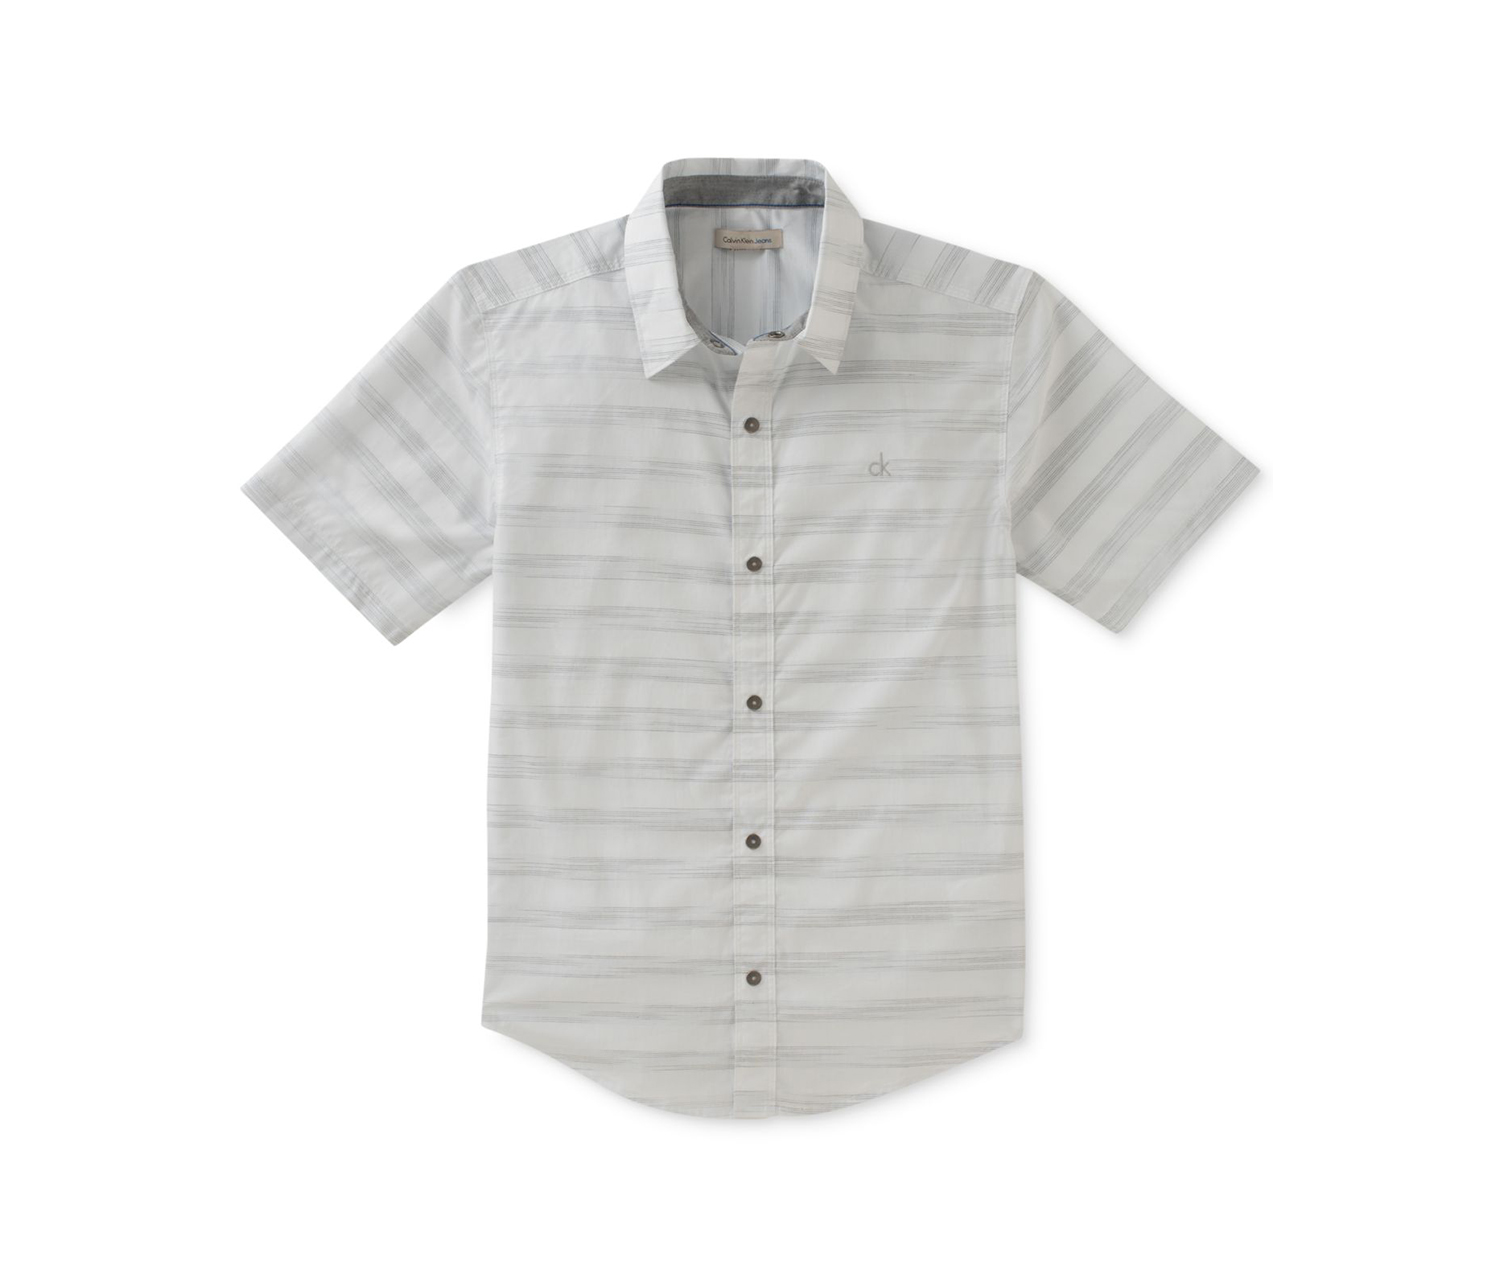 Space-Dyed Striped Cotton Shirt, Grey